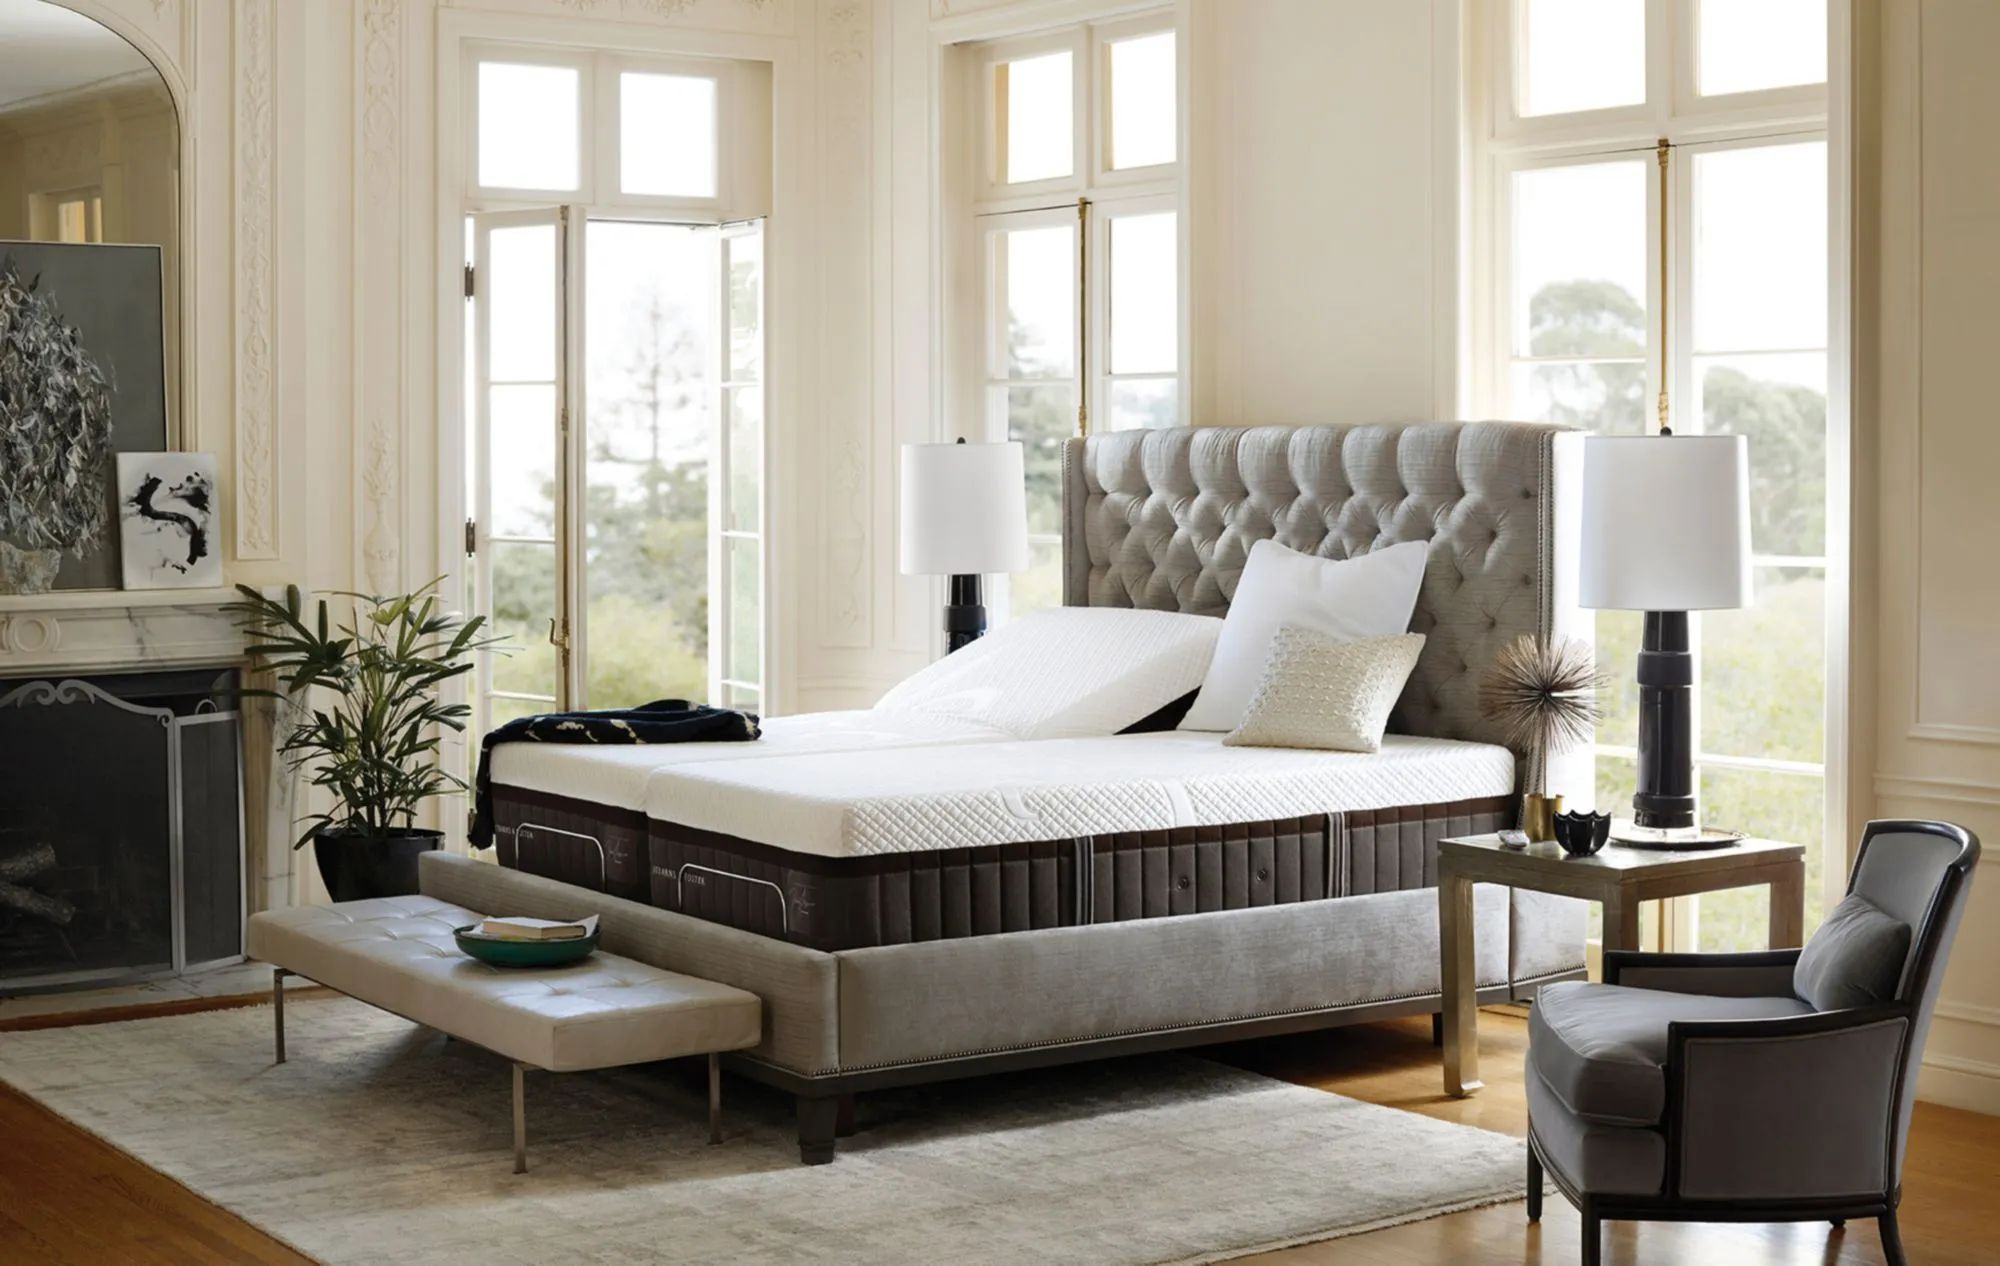 king stearns foster lux estate hybrid mary leigh luxury plush 15 inch mattress